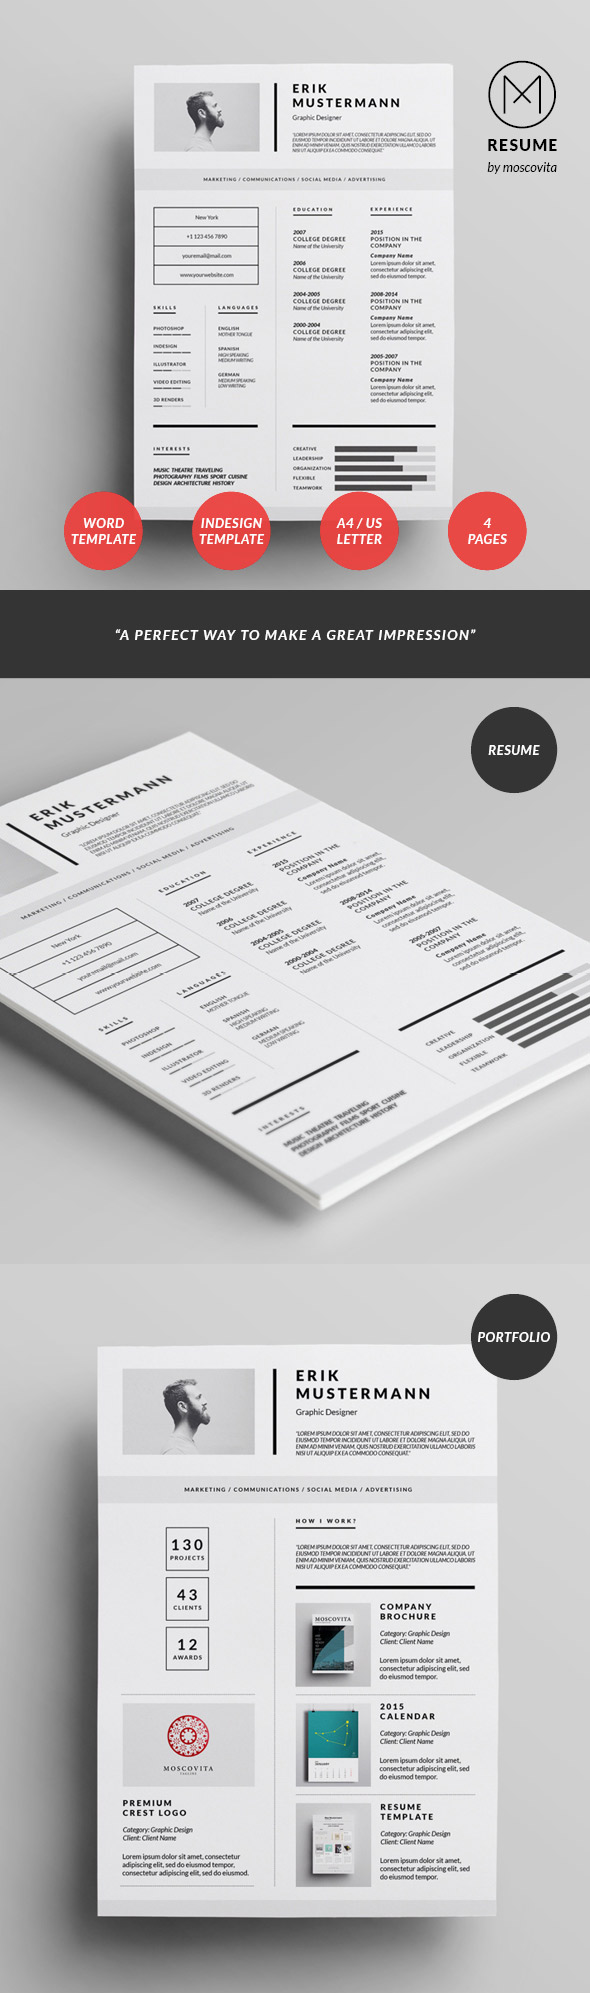 creative resume templates to land a new job in style creative modern resume design